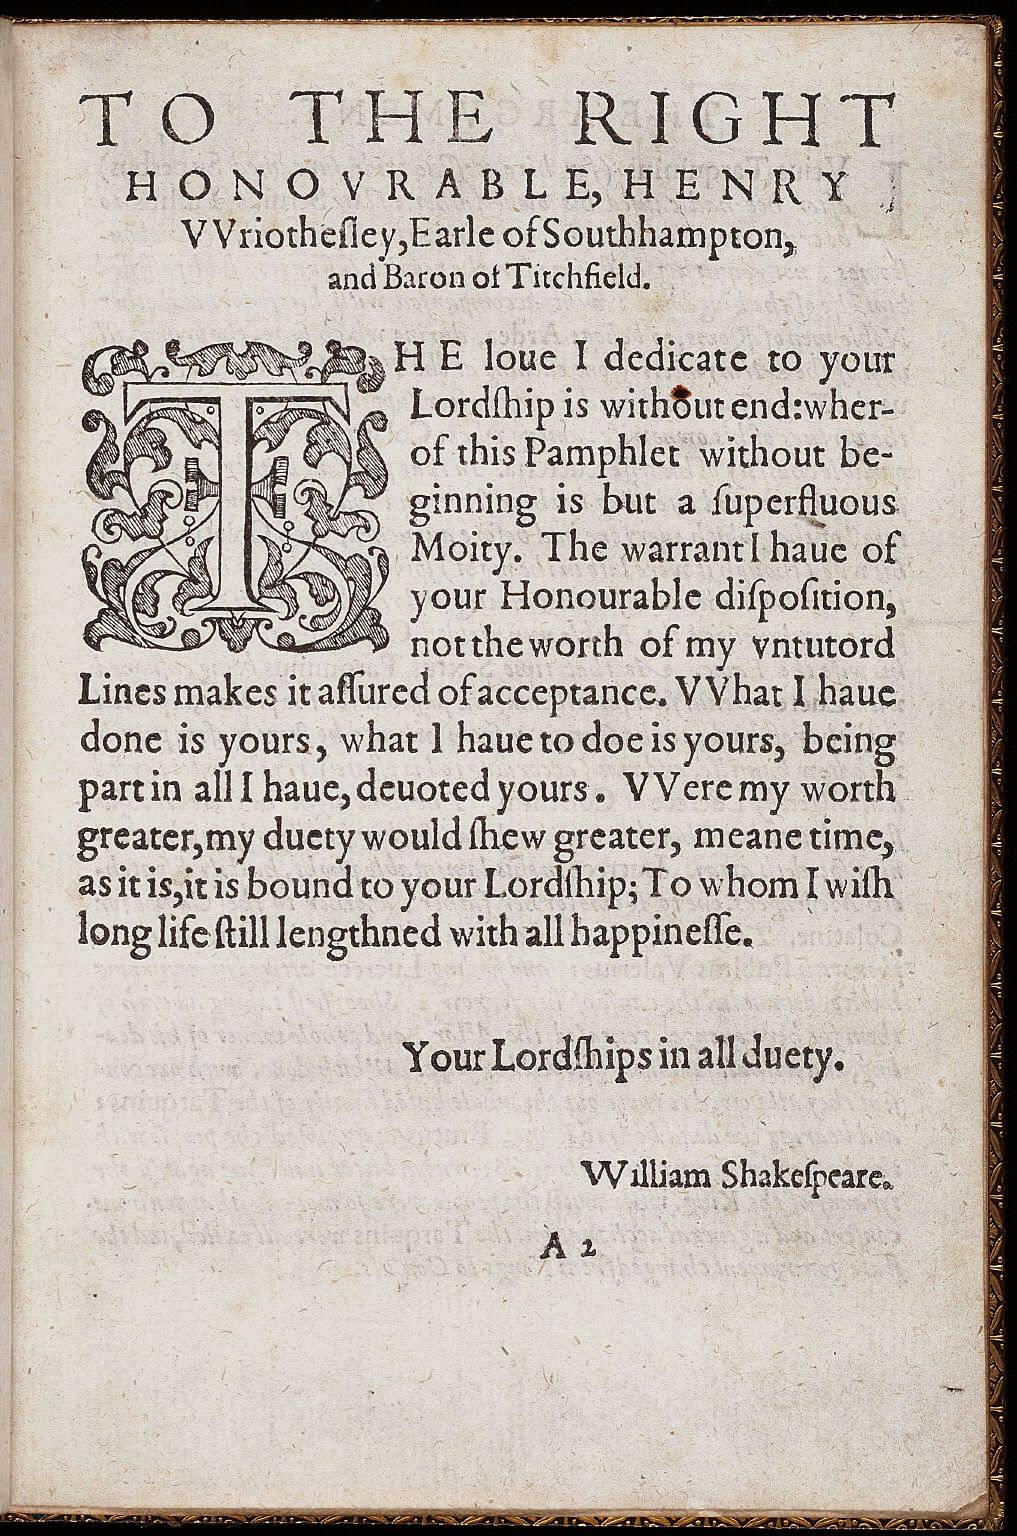 an analysis of hamlets peers in hamlet by william shakespeare My analysis of hamlet's first soliloquy which appears in act 1: scene 2.